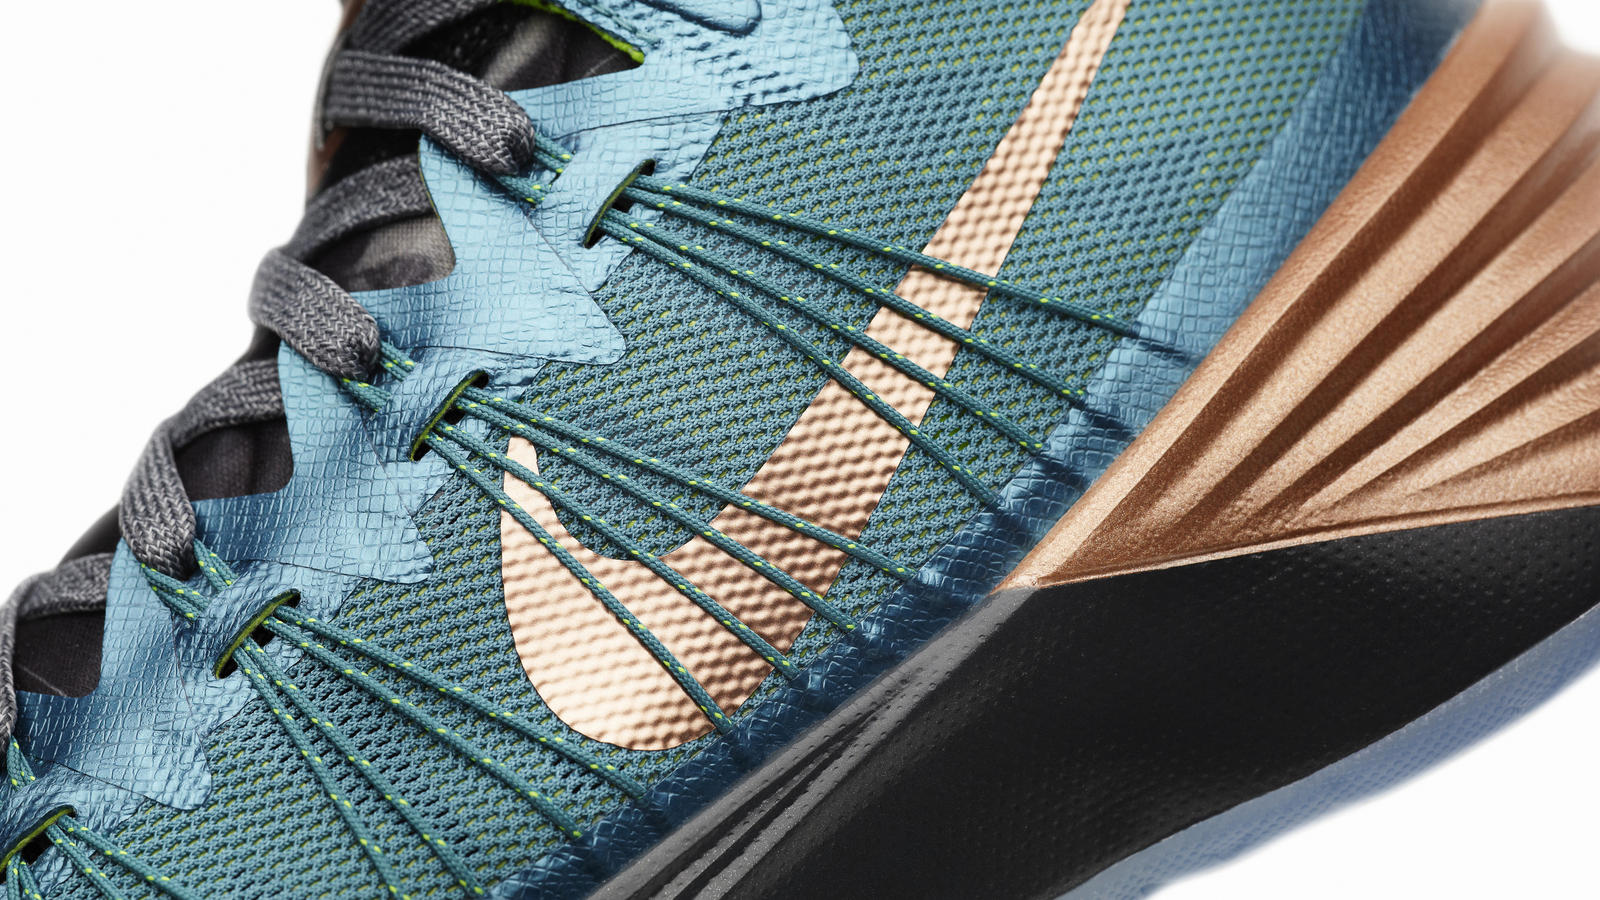 e90d2a56852 Kyrie Irving Hyperdunk 2013  Reflecting his Past and Future - Nike News